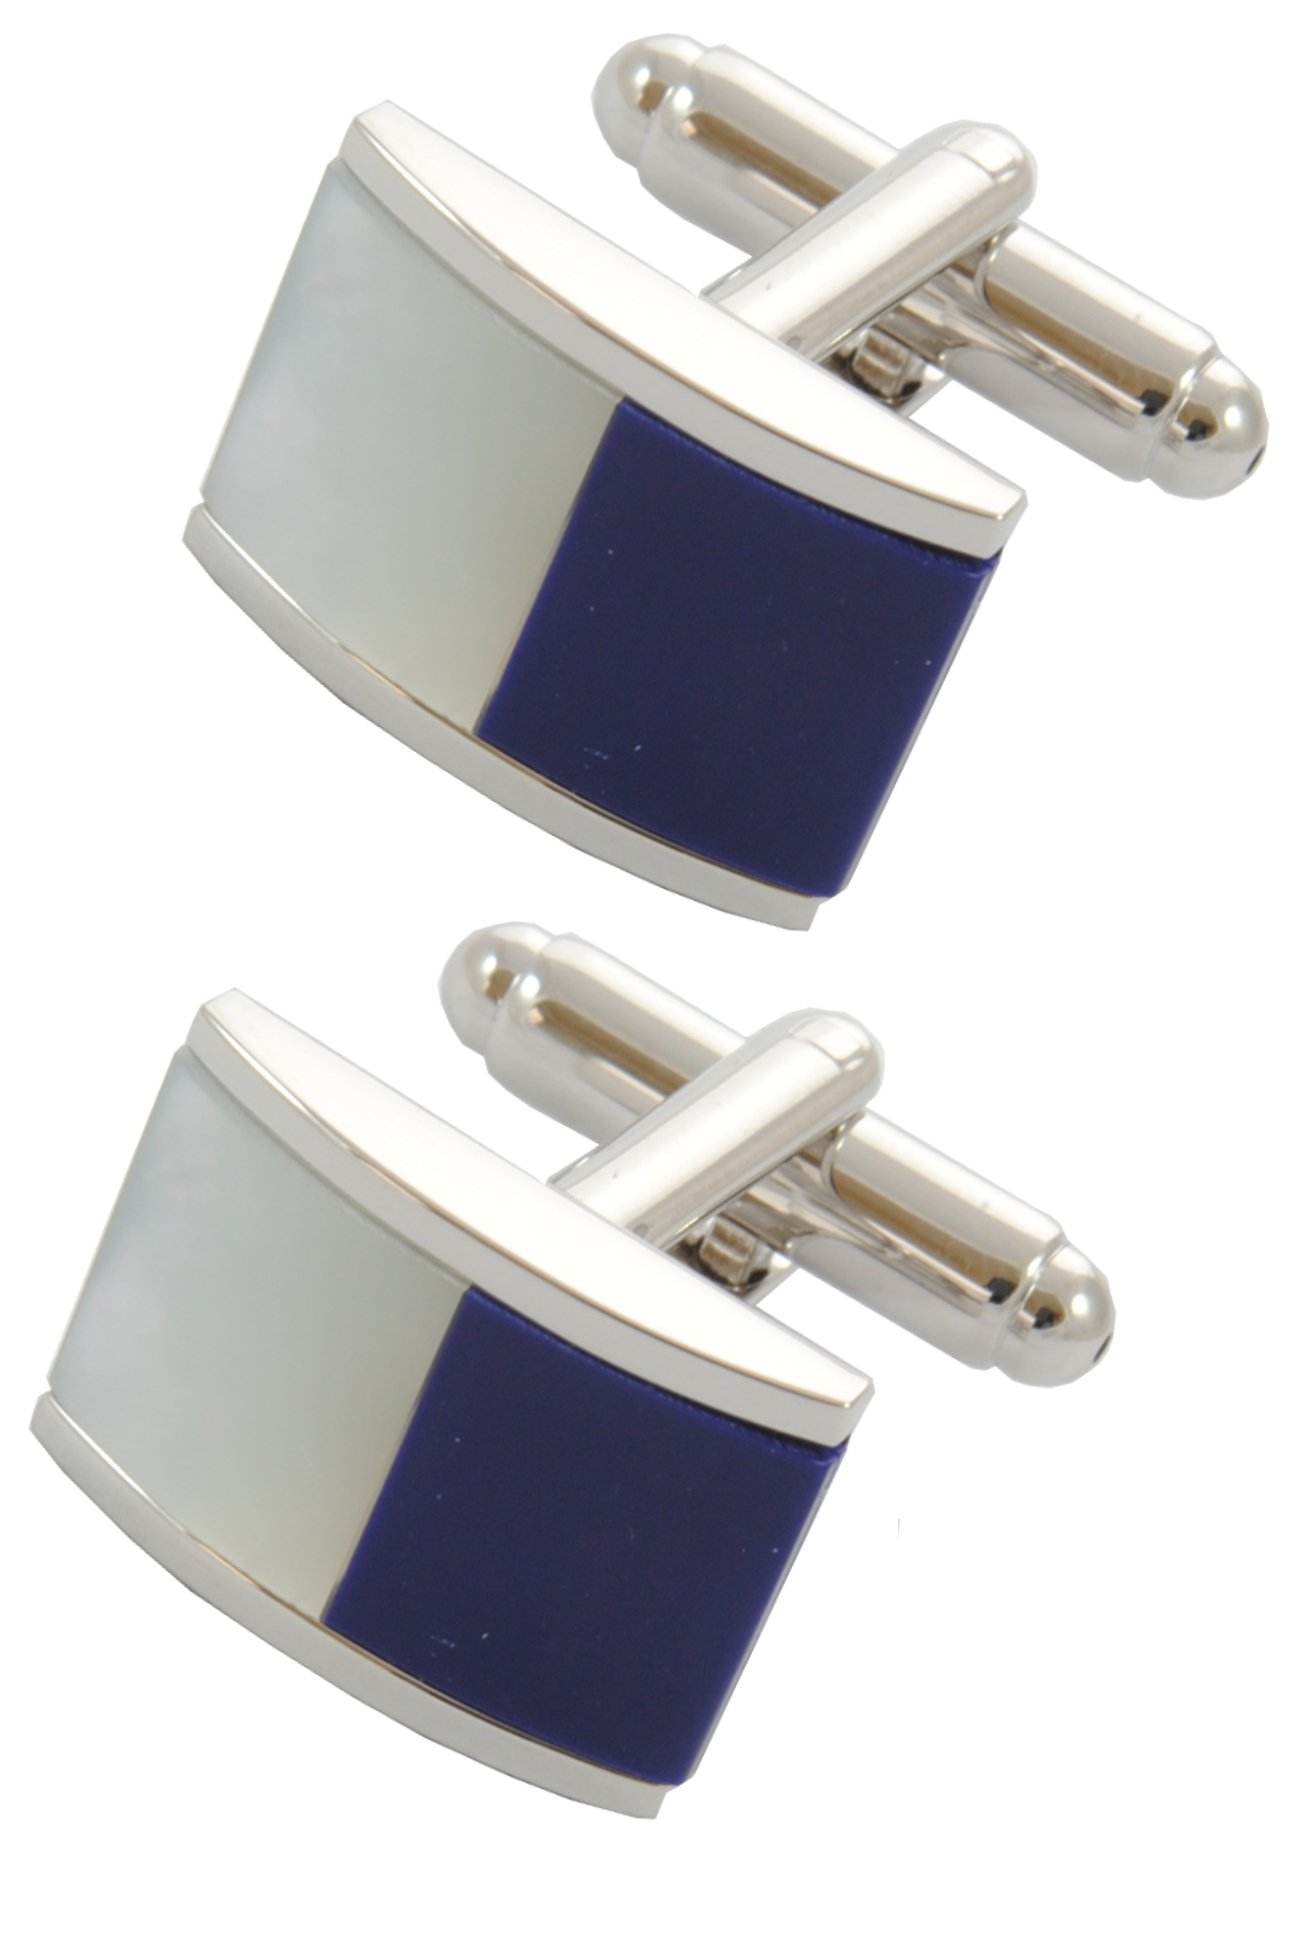 COLLAR AND CUFFS LONDON - Premium Cufflinks with Gift Box - Half Barrel Dual Colour Including Mother of Pearl - Classic Fashion Design - Blue and White Colours